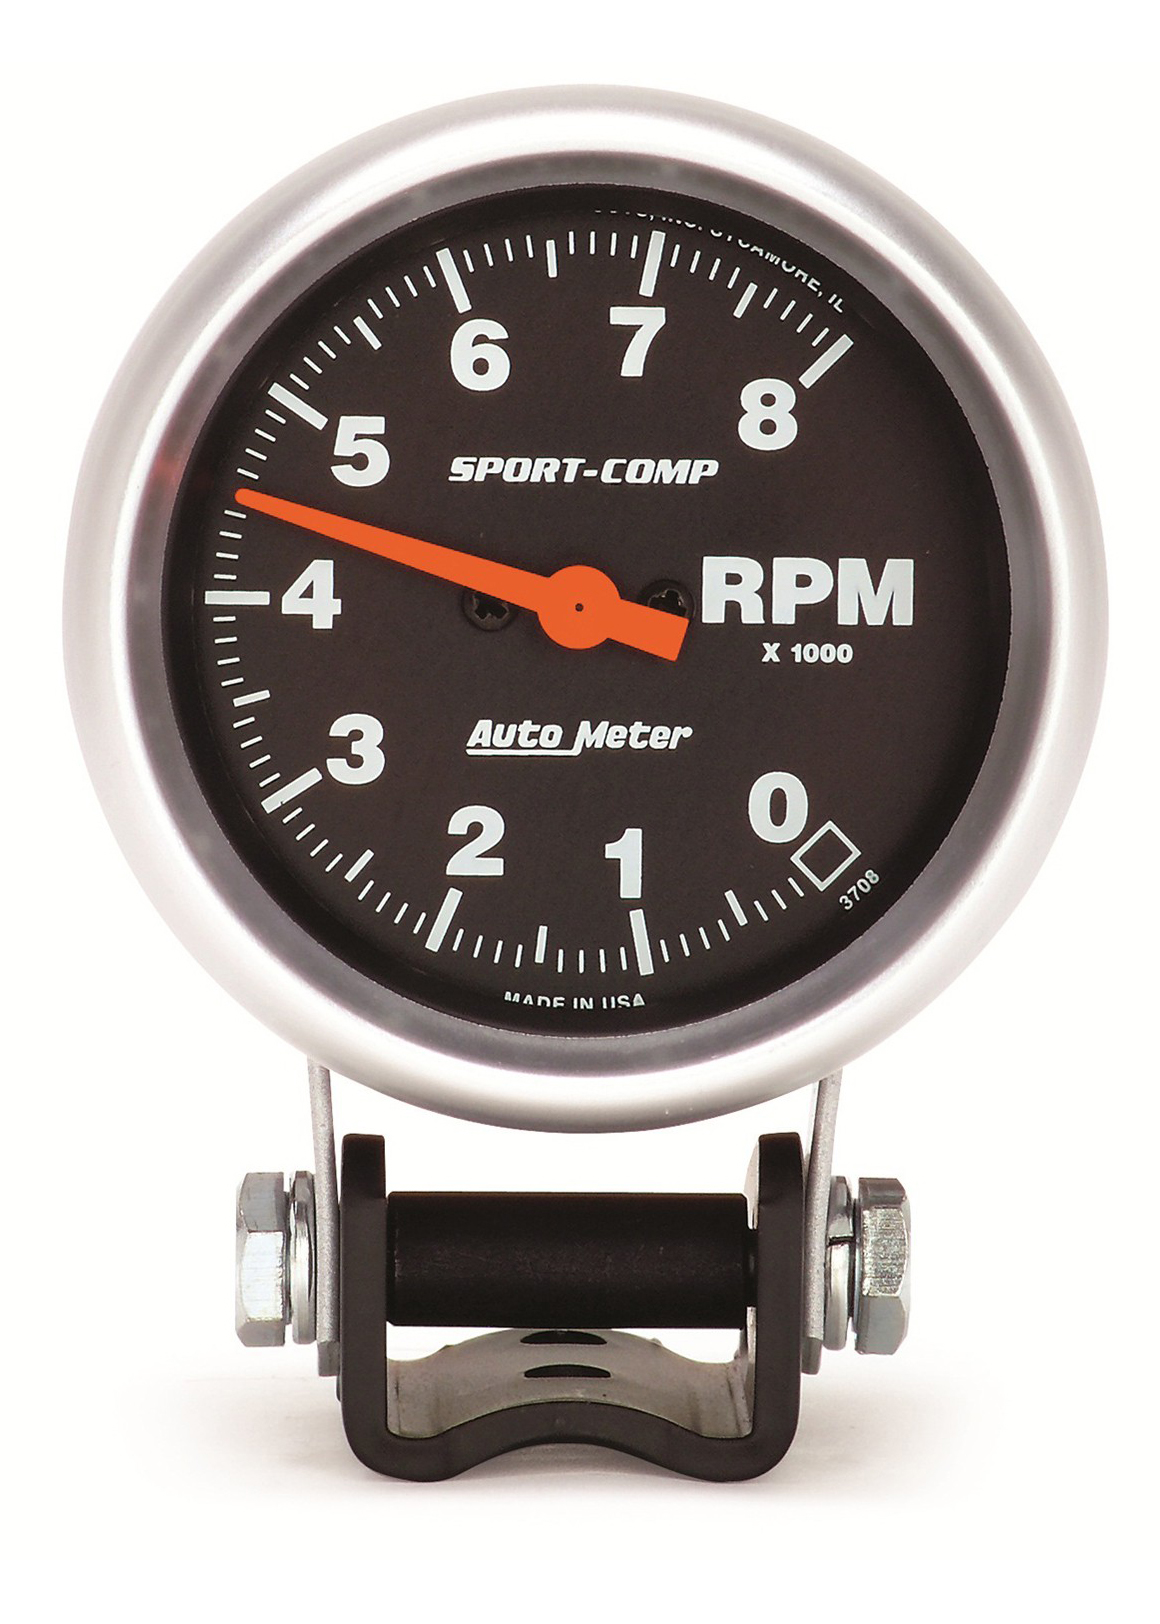 hight resolution of  u s made air core electronic movements that resist vibration and provide extremely accurate motion this compact mini tach has a street price of around